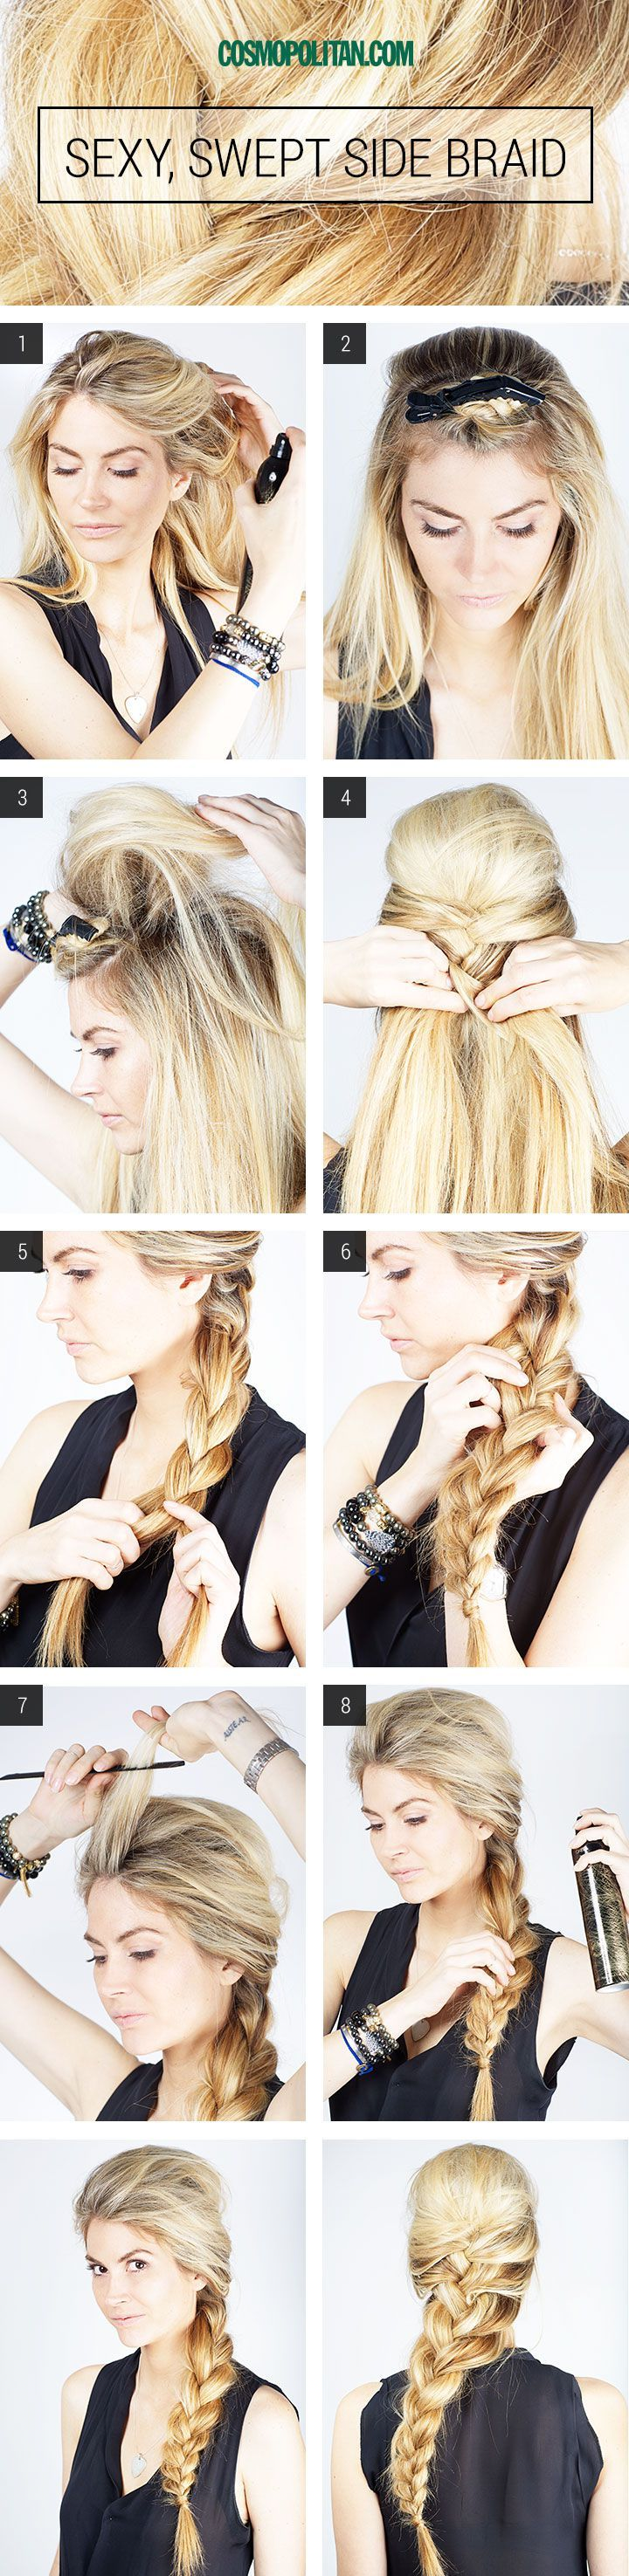 12 Super Easy Hair Looks Every Woman Can Do in 5 Minutes